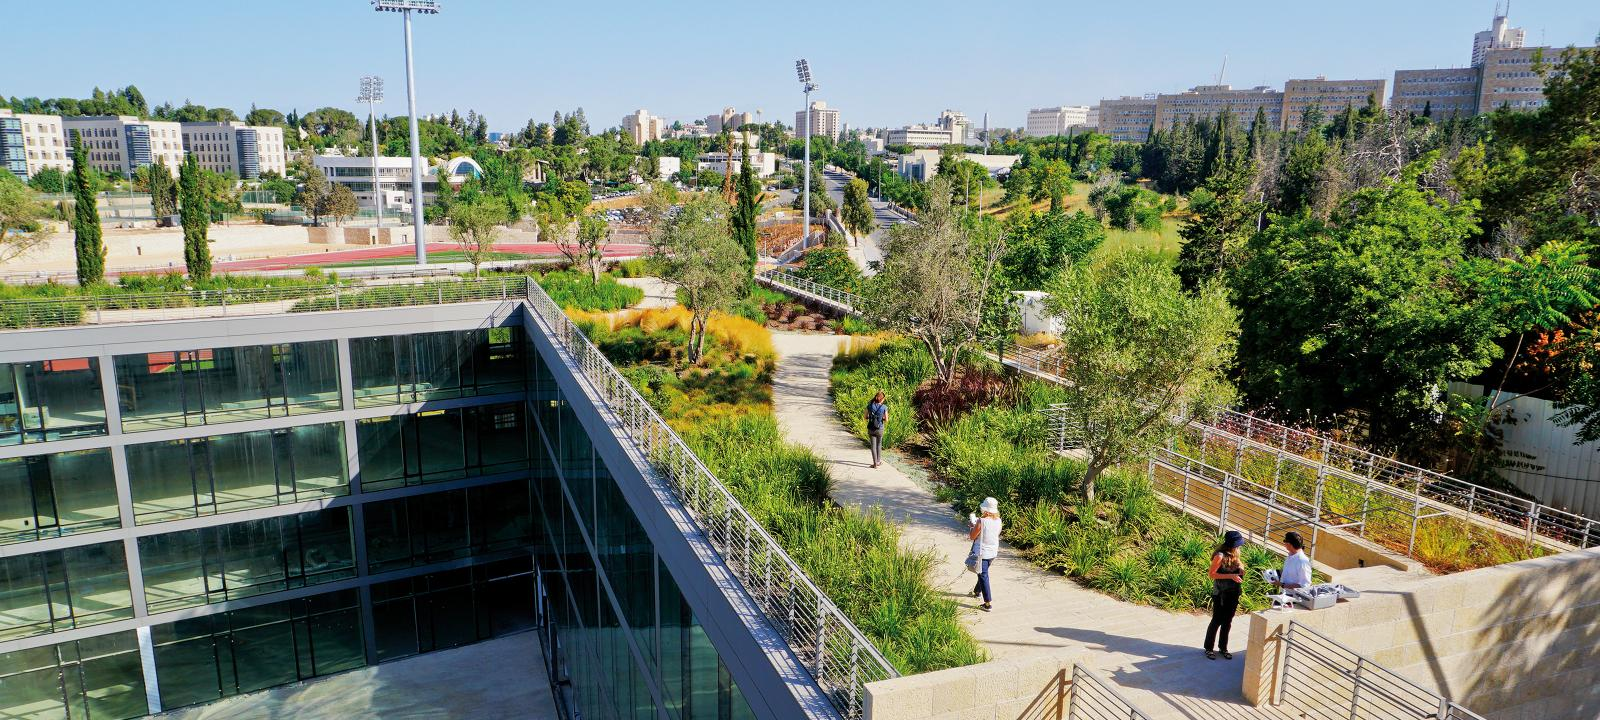 Park Like Green Roof With People Strolling Around